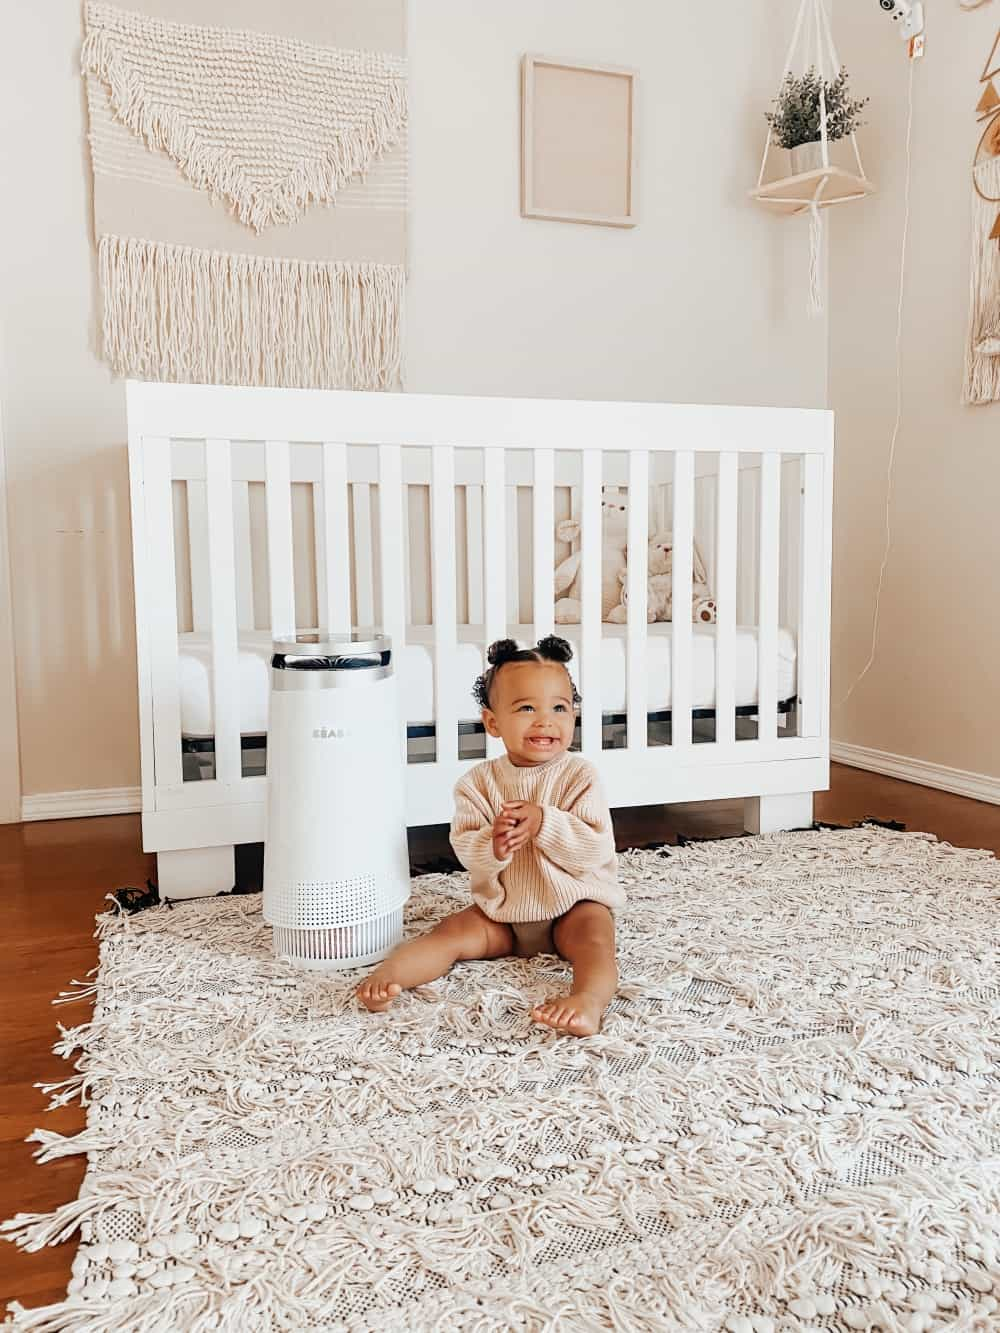 Air Purifier in Nursery Room with Toddler Next to It